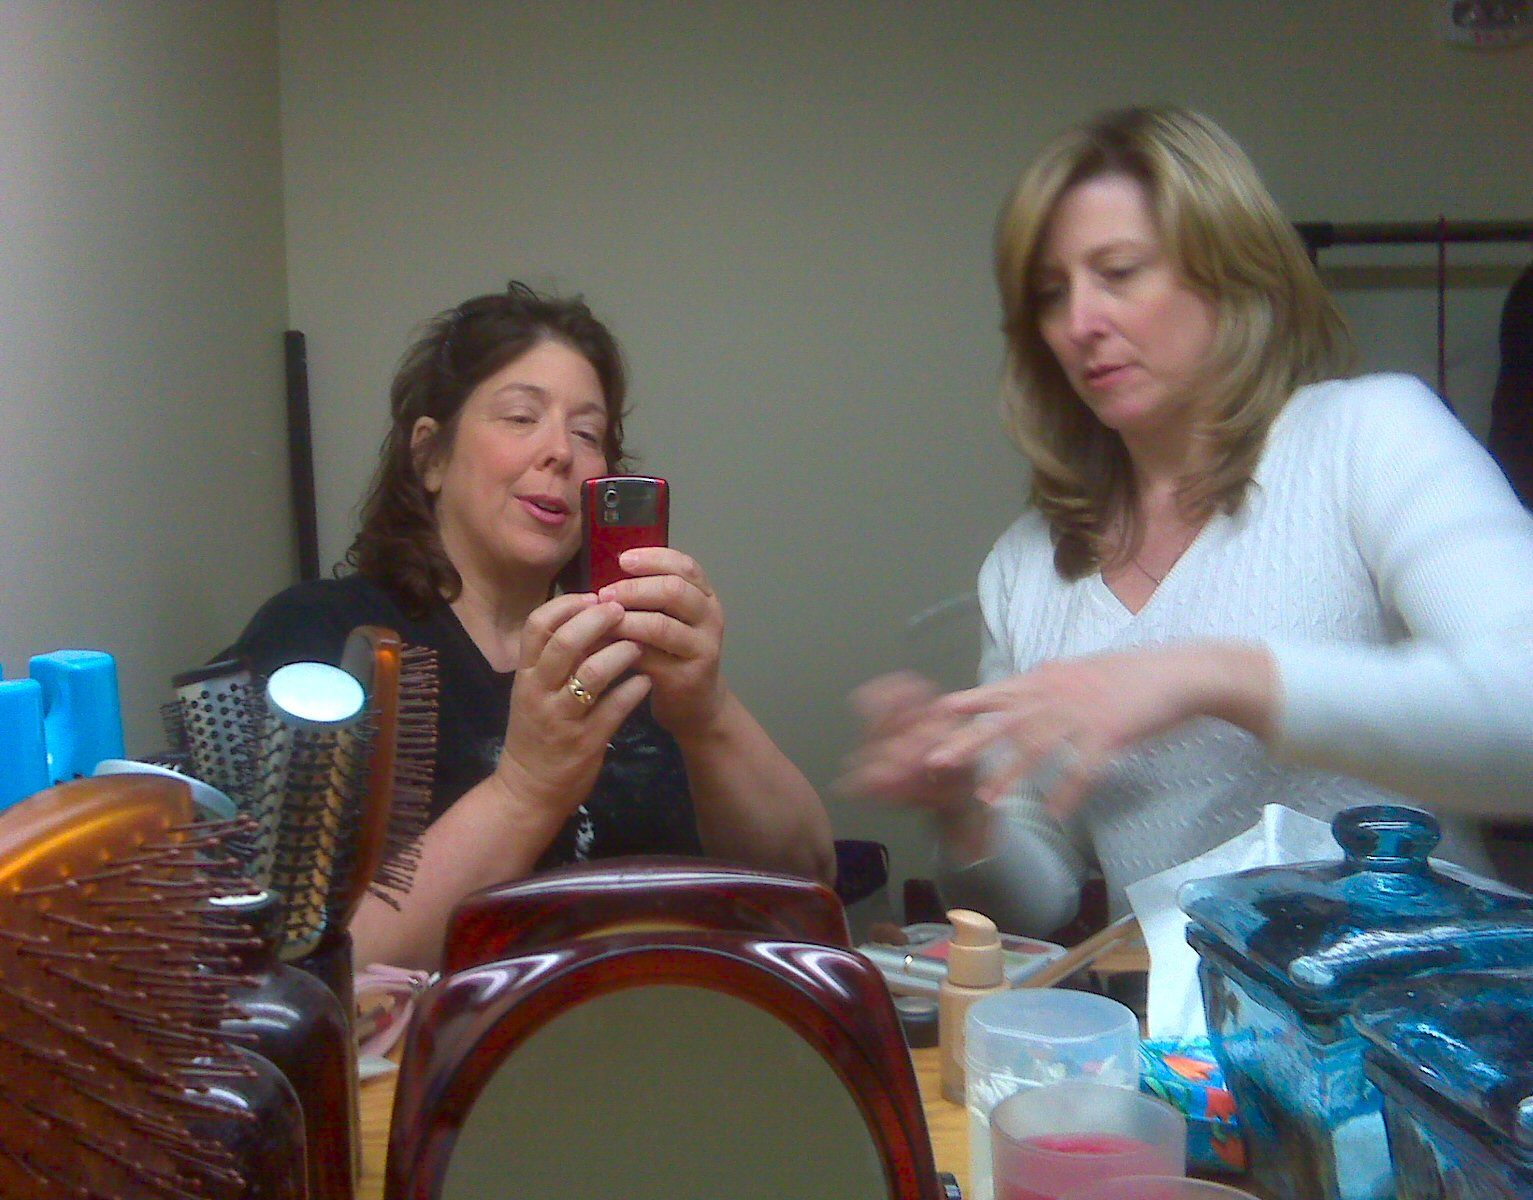 Priscilla came down to help out. Here we're putting on makeup before the shoot.